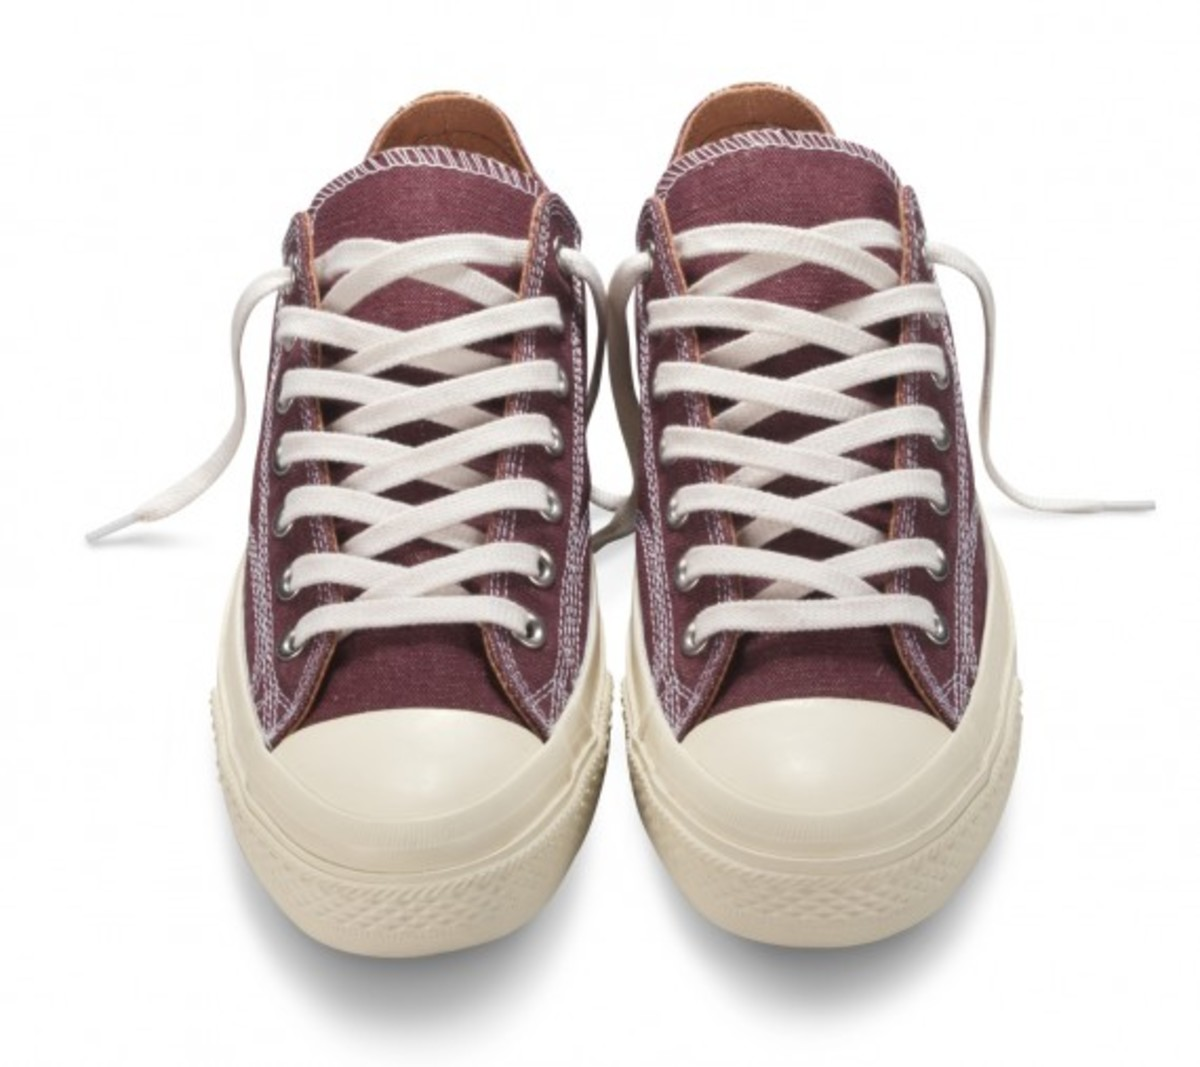 the-hideout-converse-chuck-taylor-all-star-ox-03